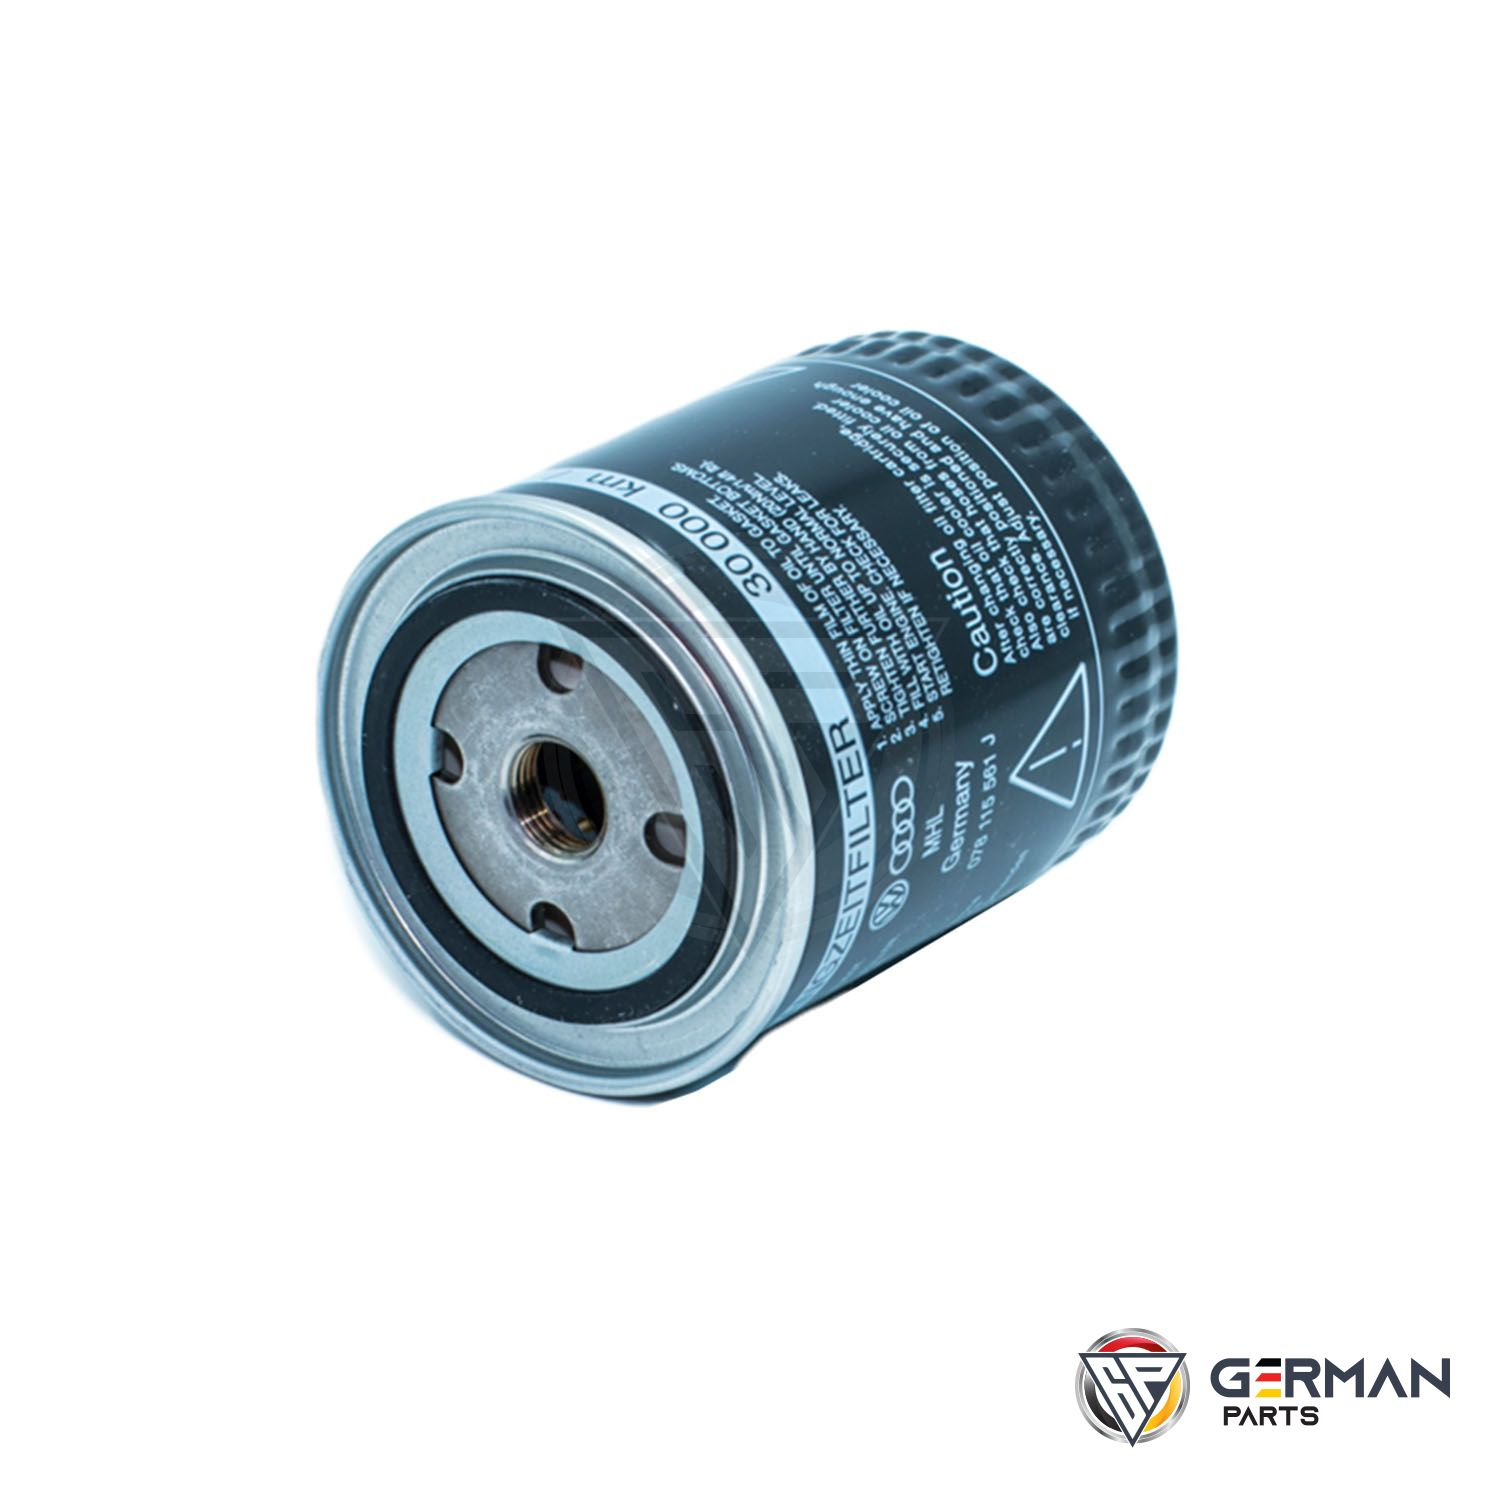 Buy Audi Volkswagen Oil Filter 078115561J - German Parts